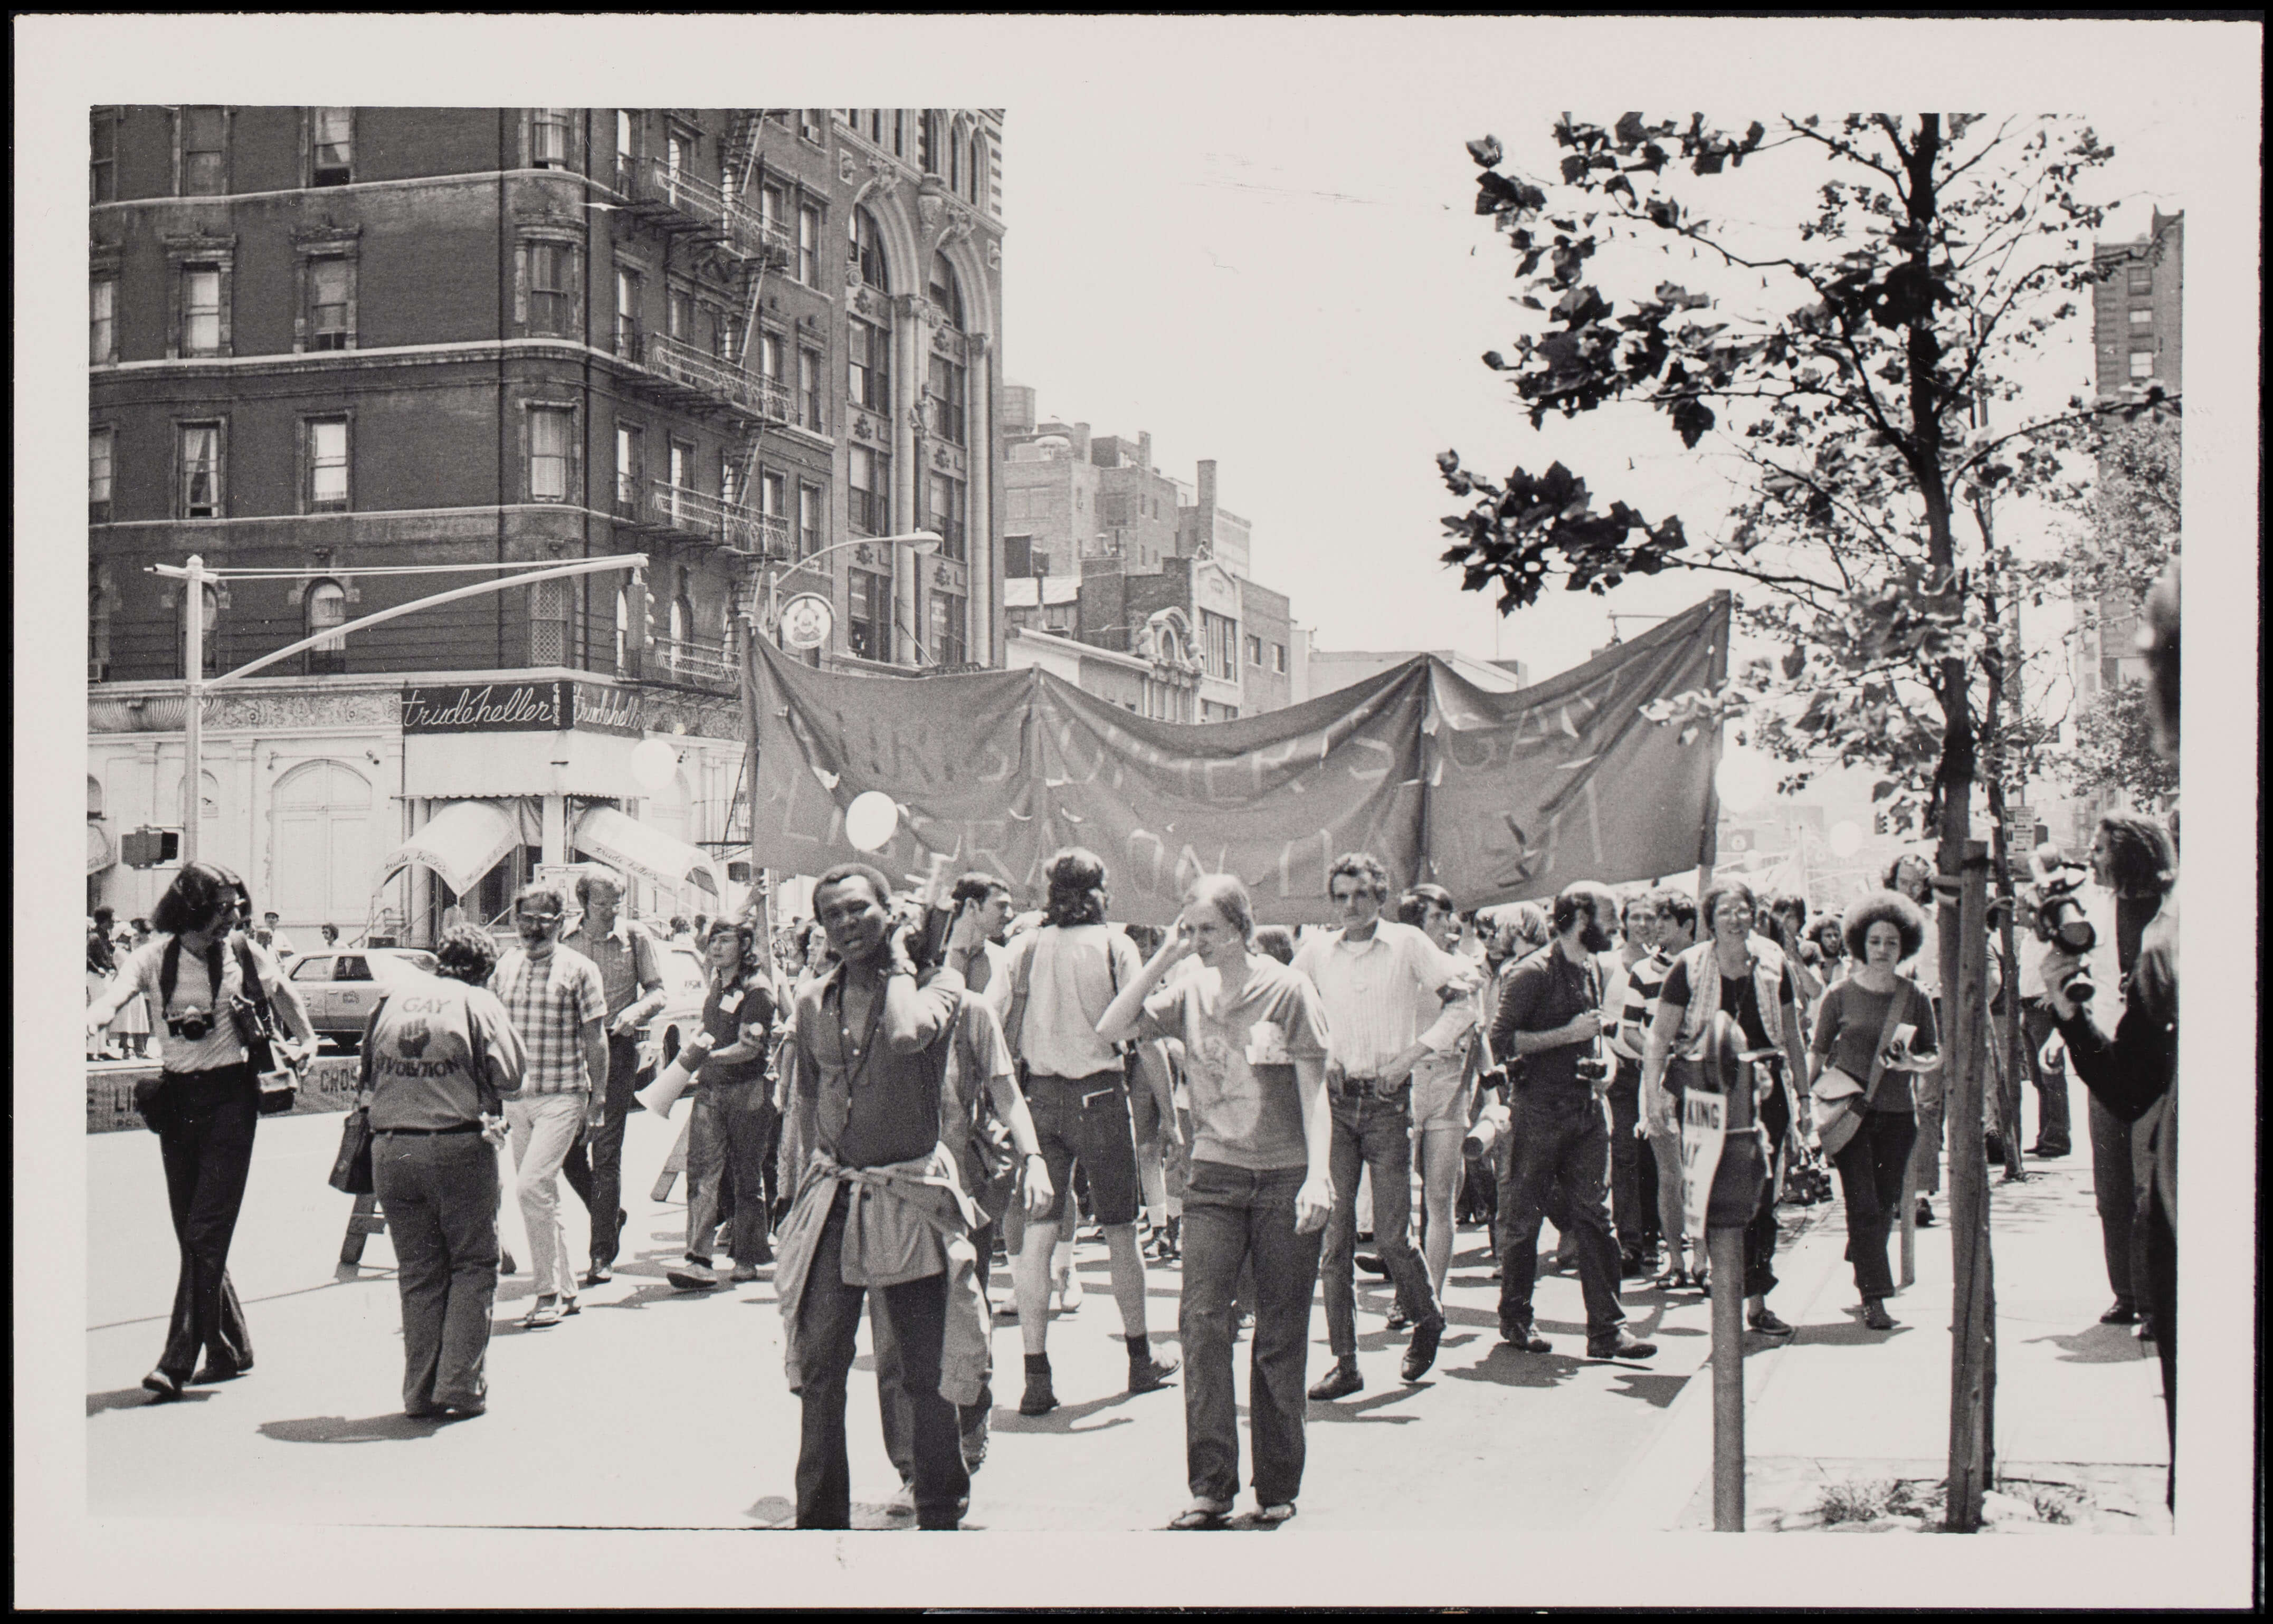 Self-Expression, Community and Identity: Remembering Stonewall